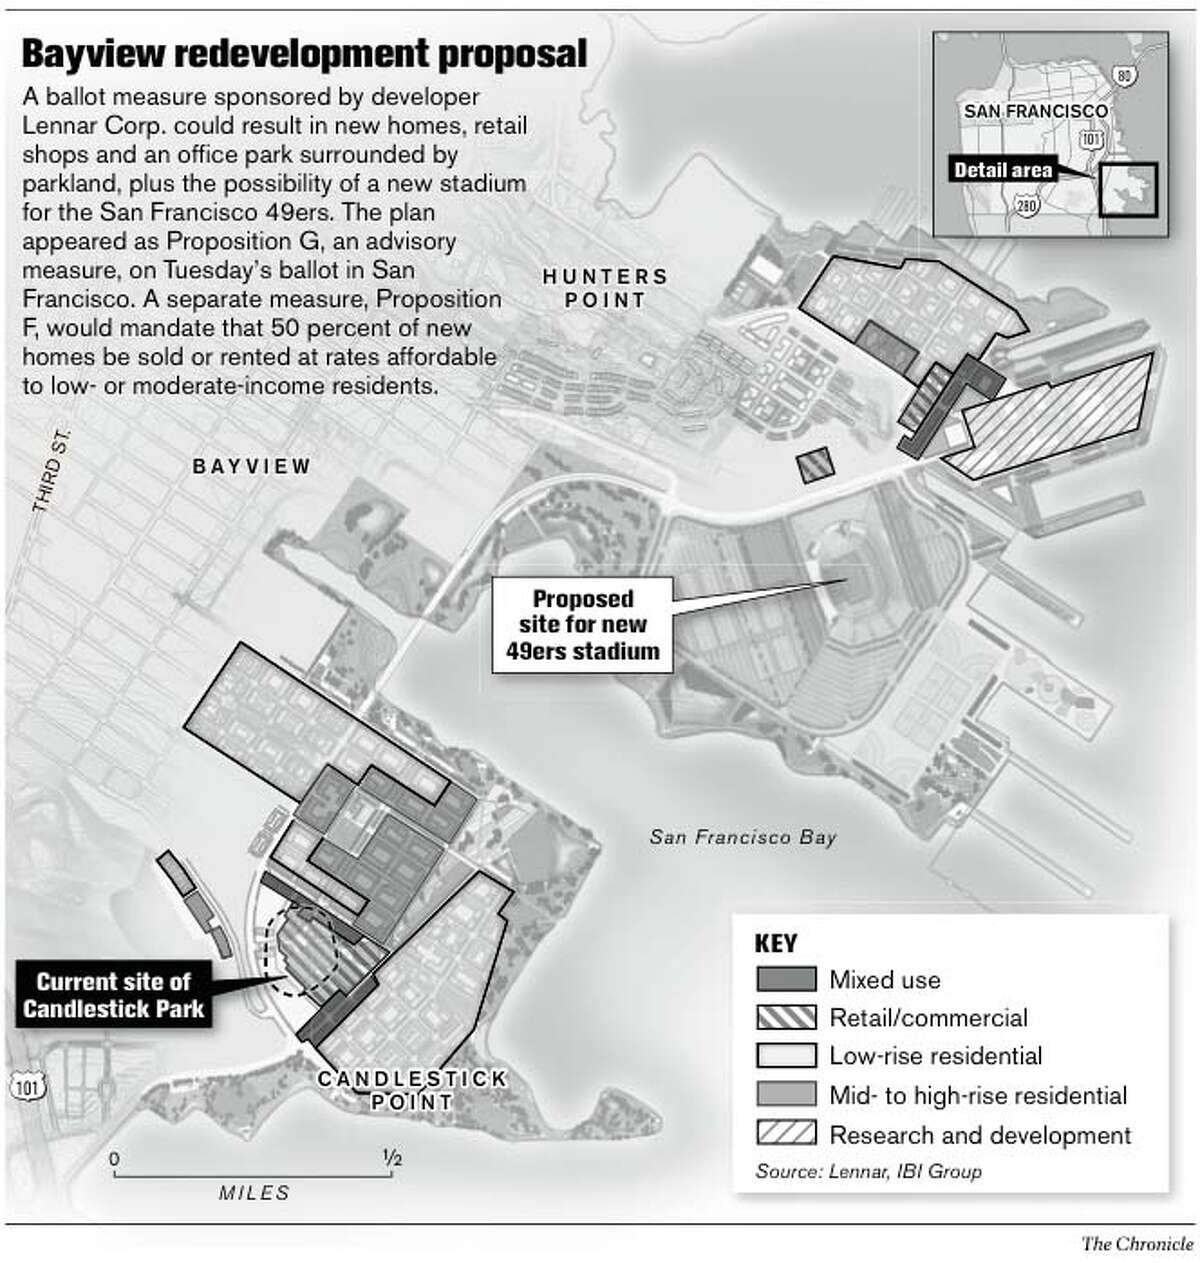 Bayview redevelopment proposal. Chronicle Graphic